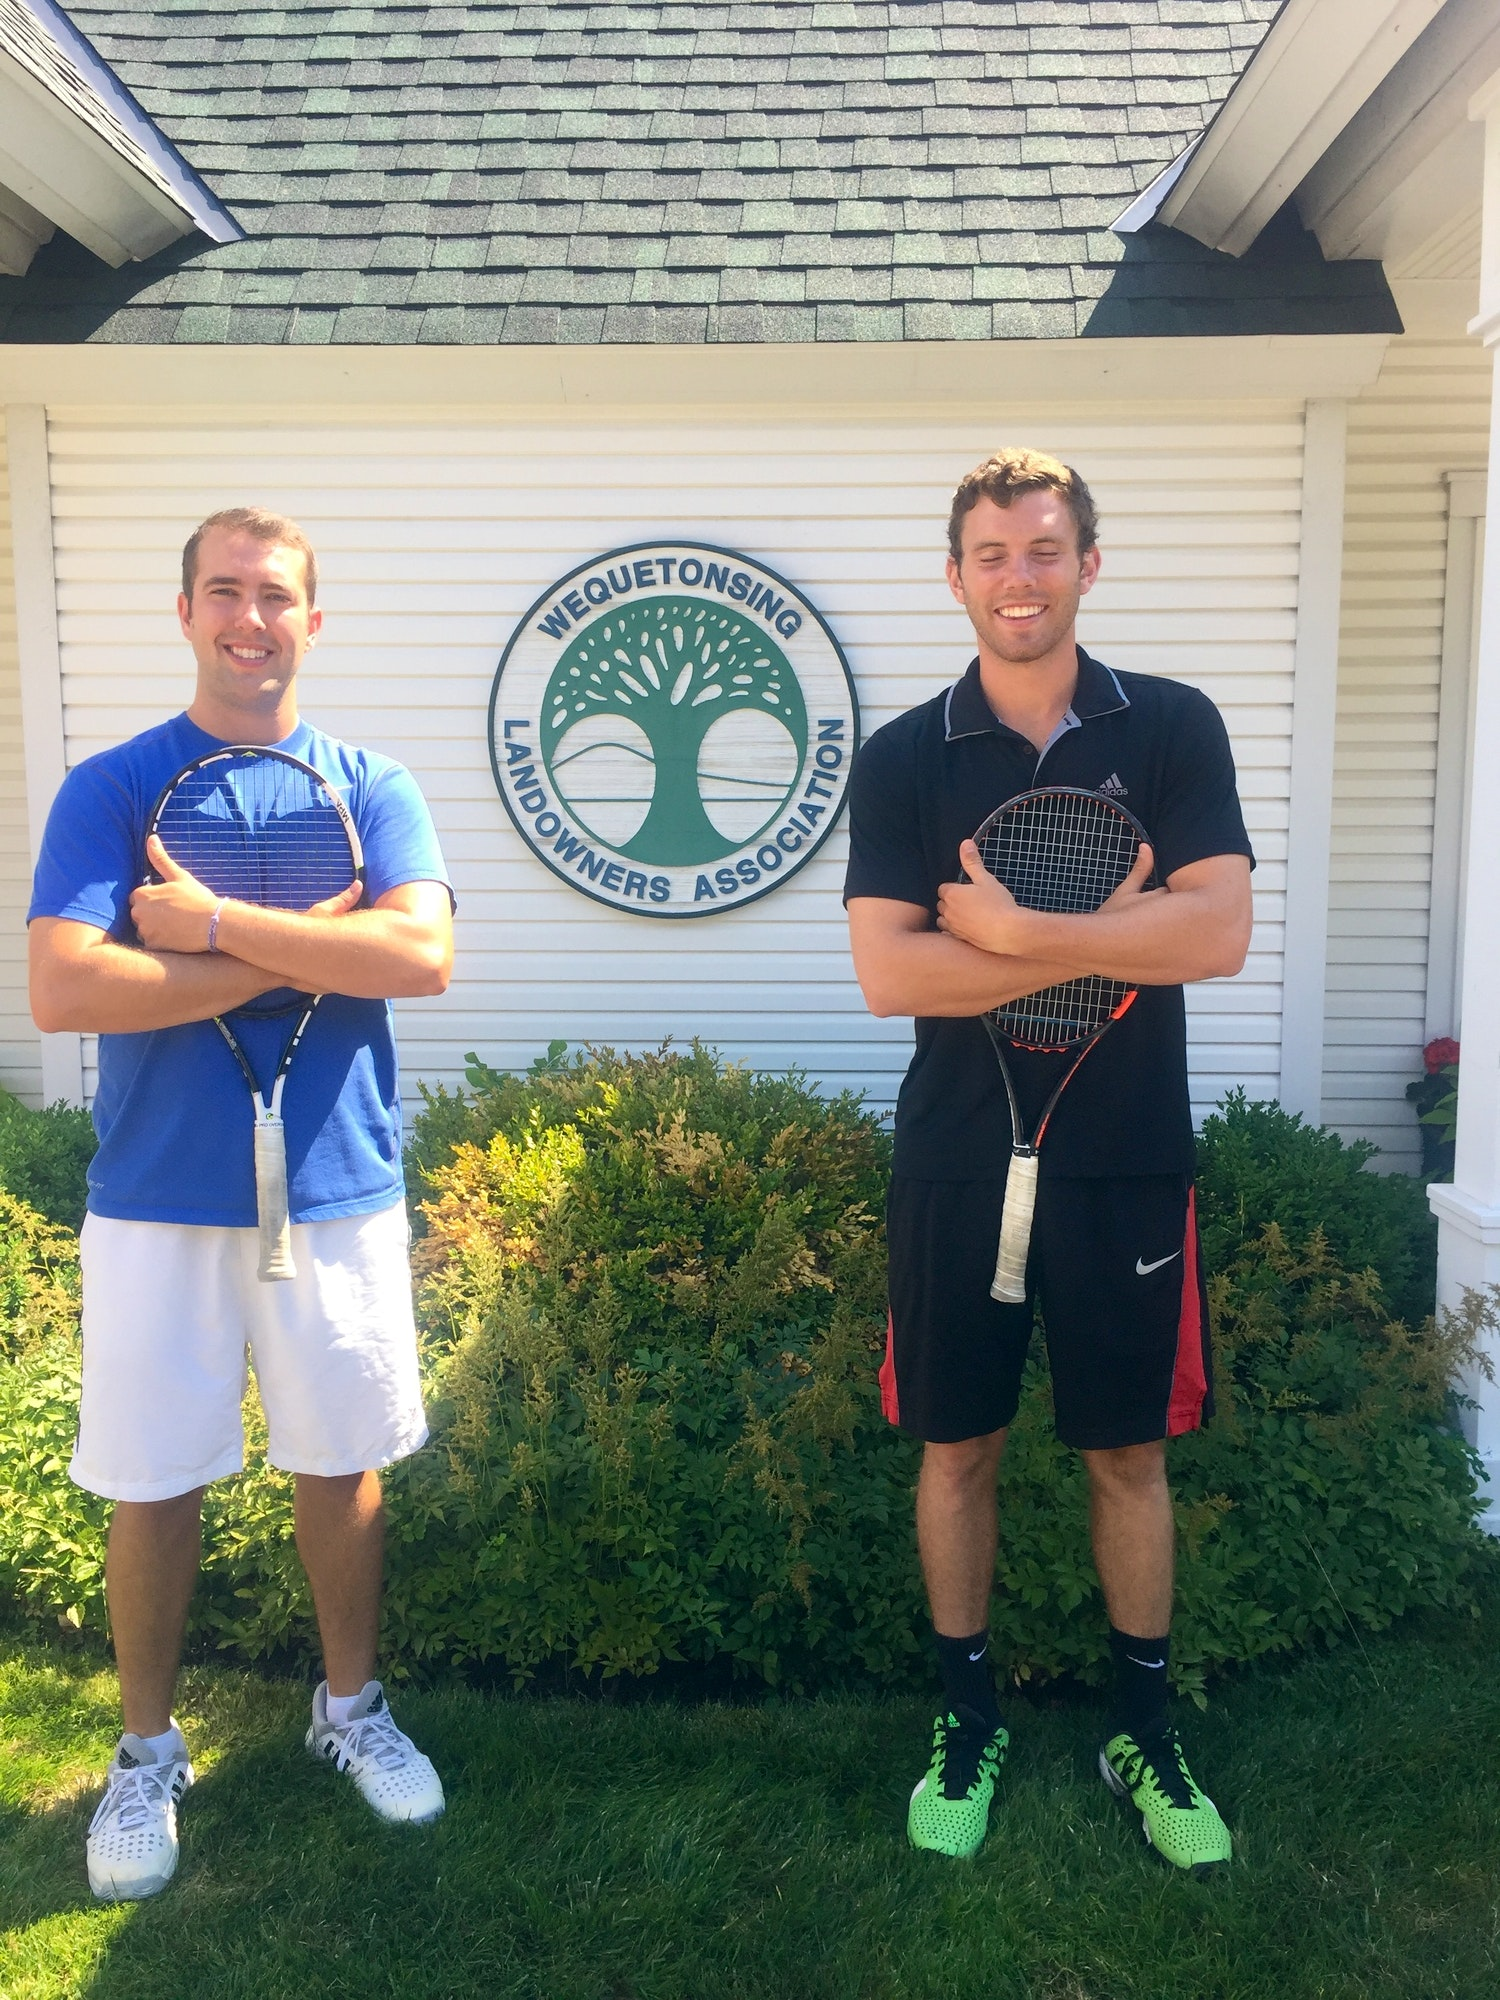 Malachy C. teaches tennis lessons in Lakewood, CO